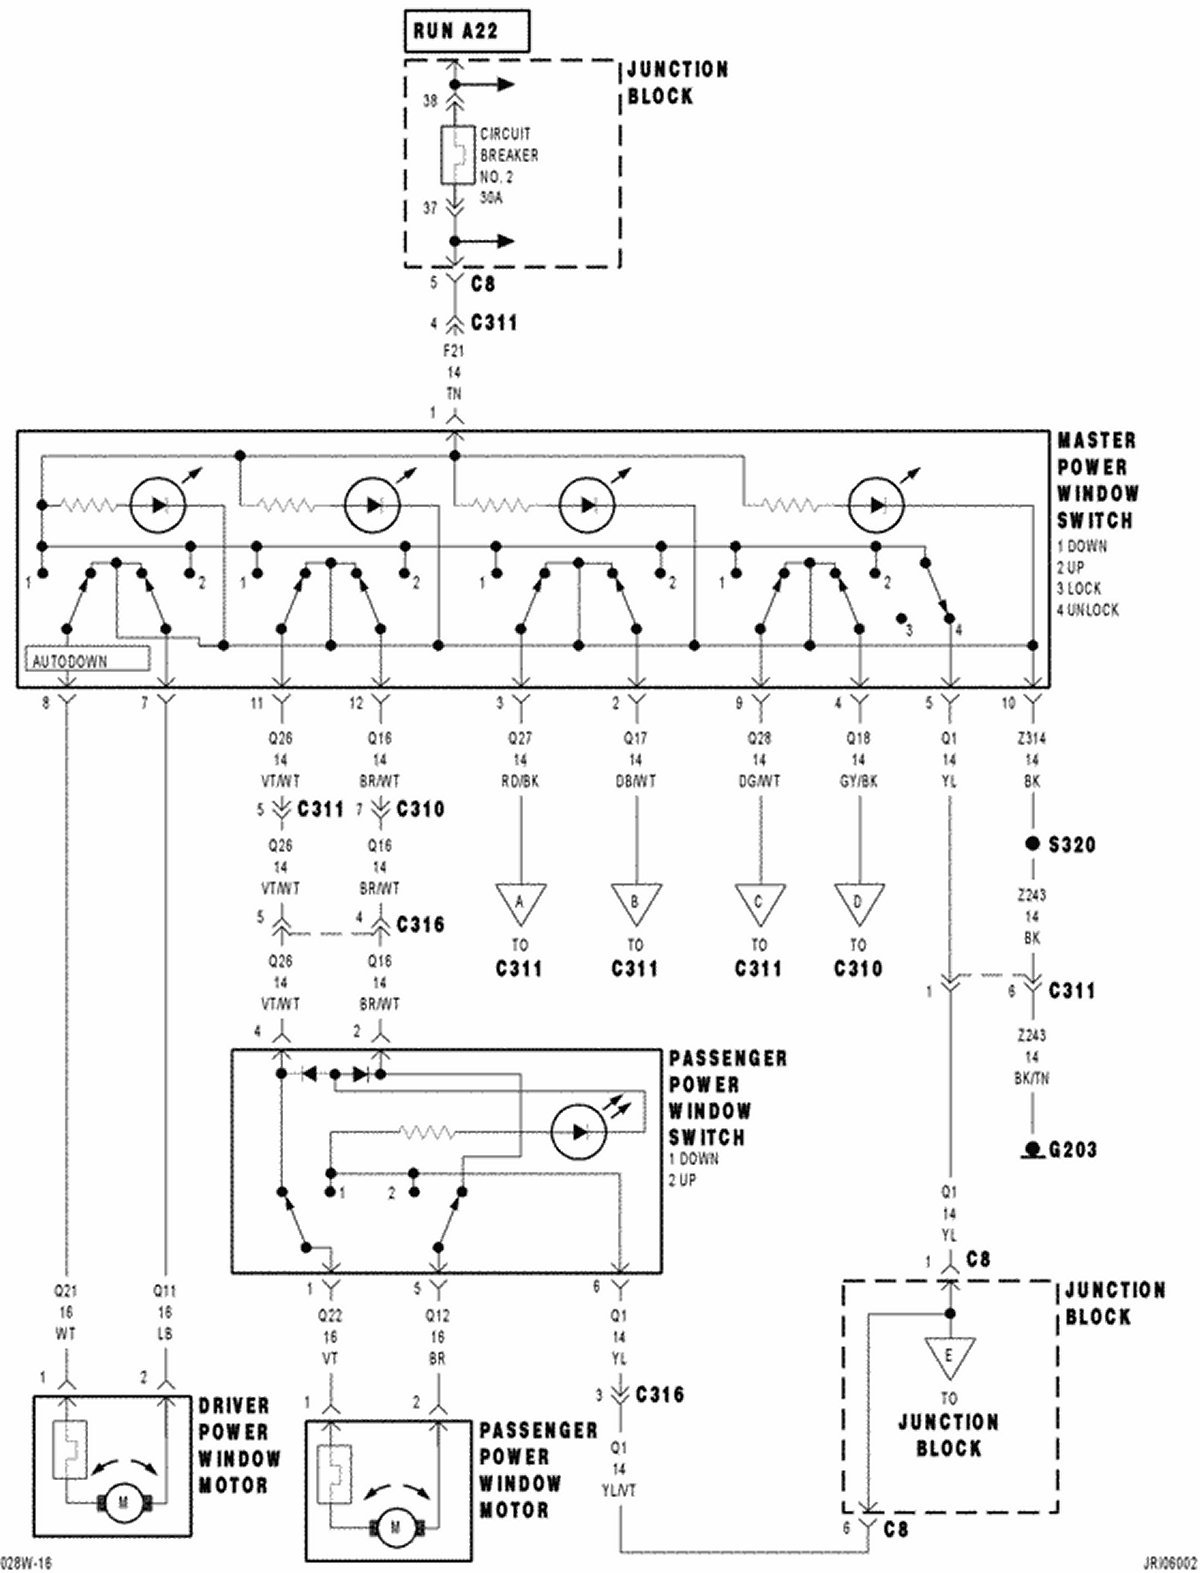 2004 Dodge Stratus Power Window Wiring Diagram Detailed 04 2 7 Engine Electrical Problem With Rr The Switch Only Works For Up Manual